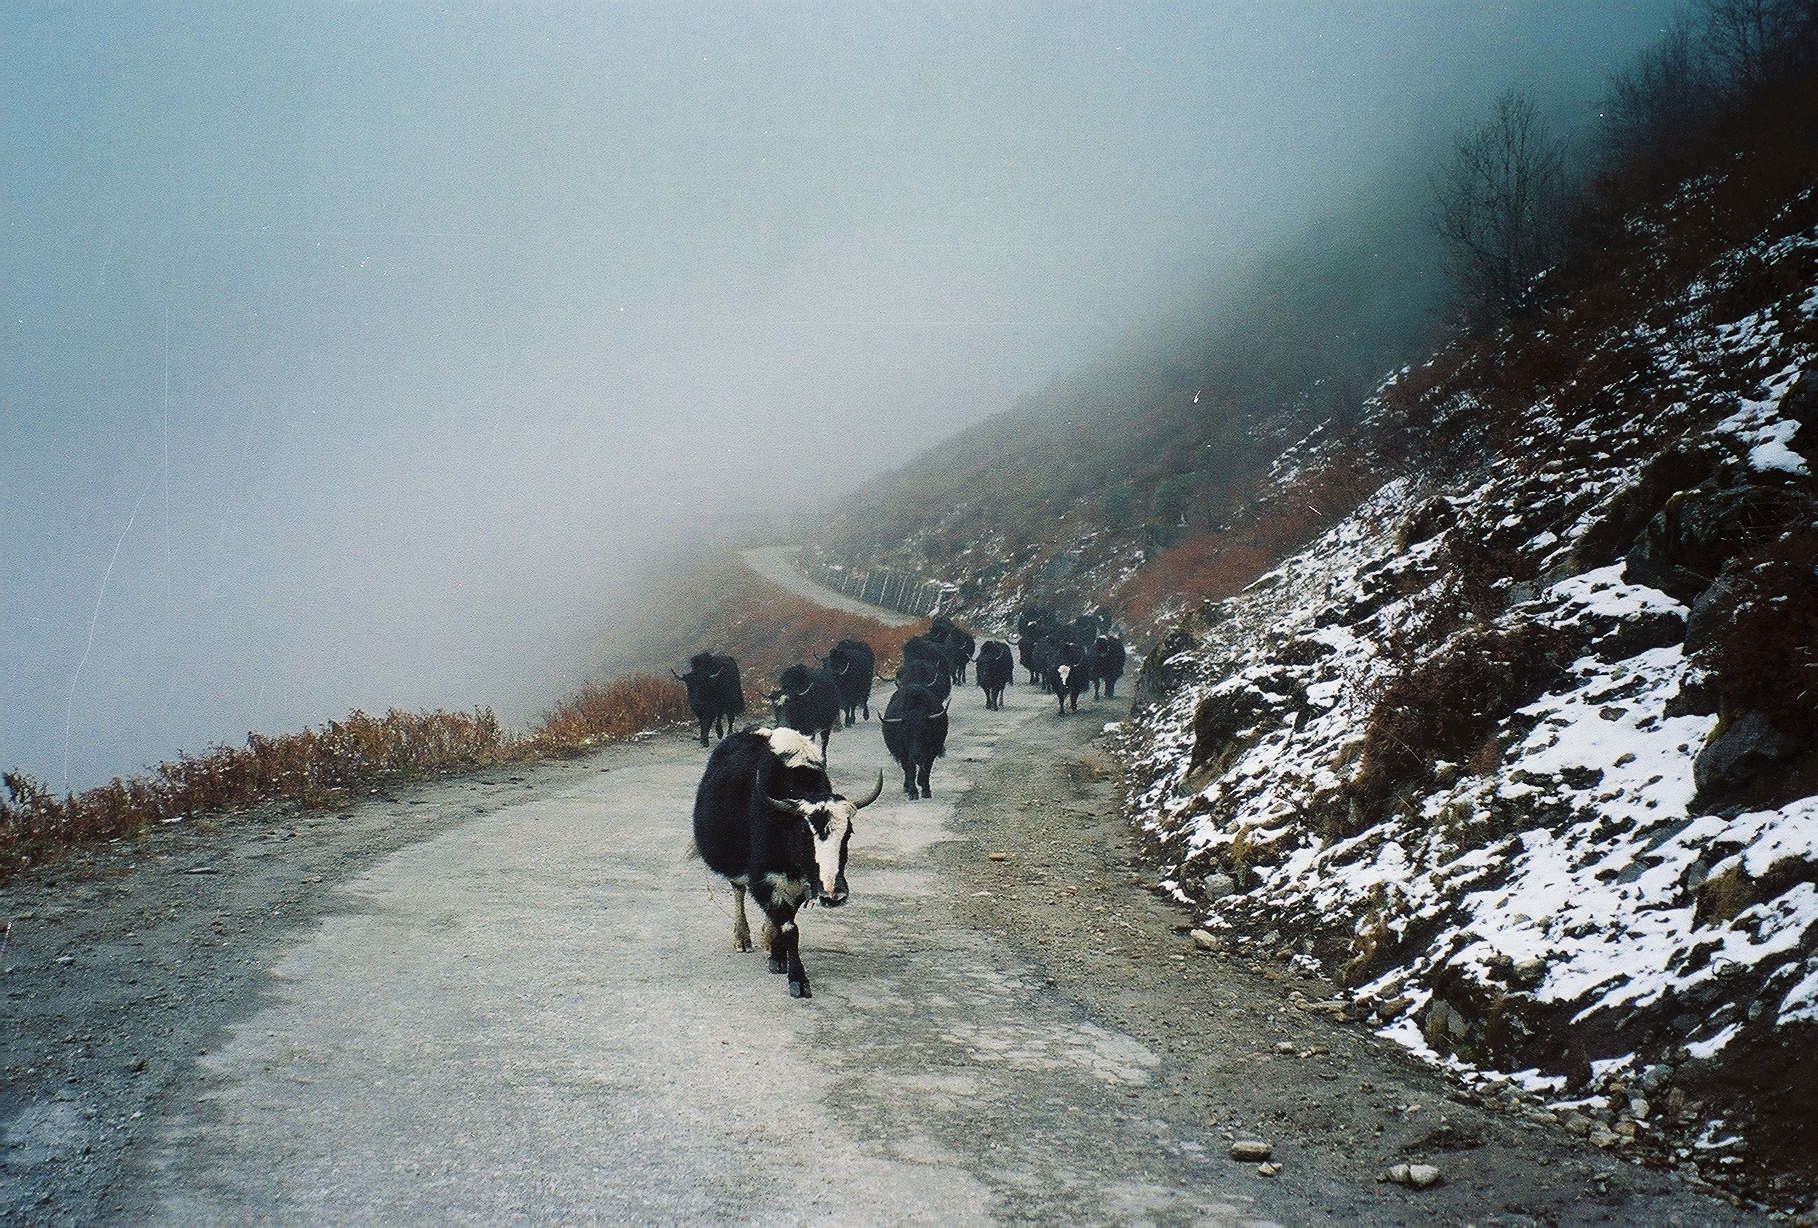 A herd of wild yaks wandering in The Himalayas